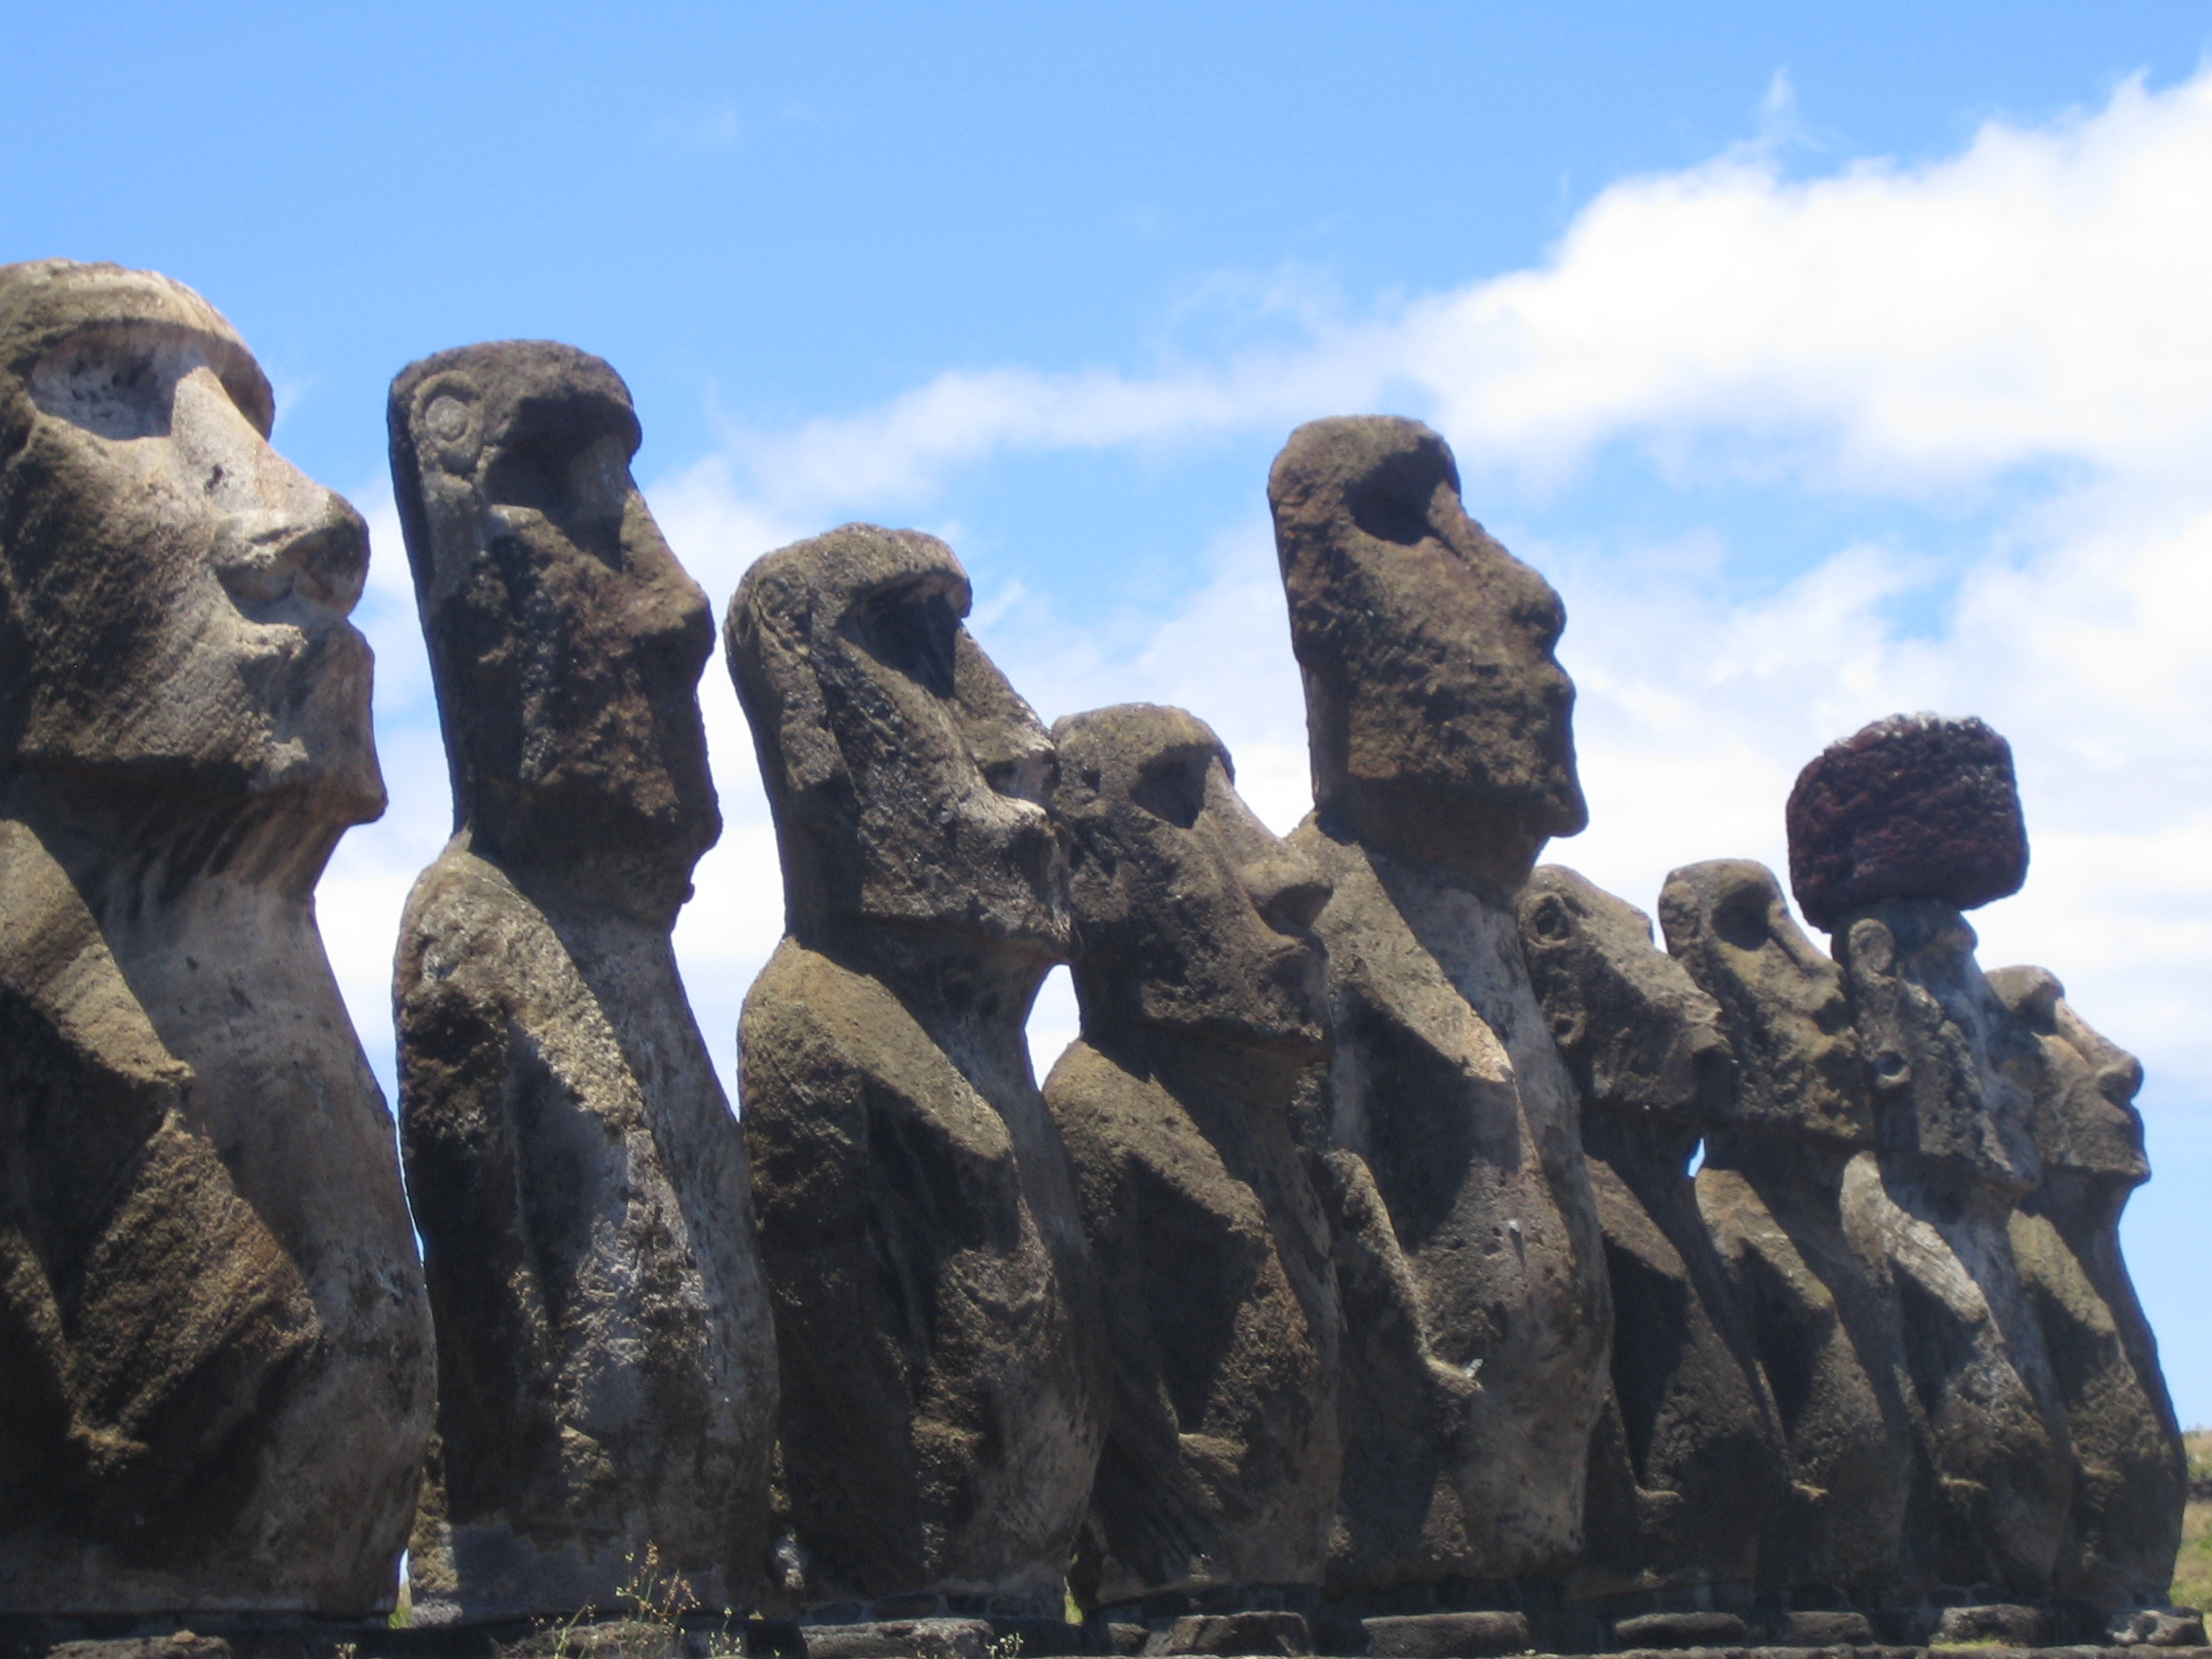 Why no one lives on Easter Island: Lessons for avoiding disastrous decisions